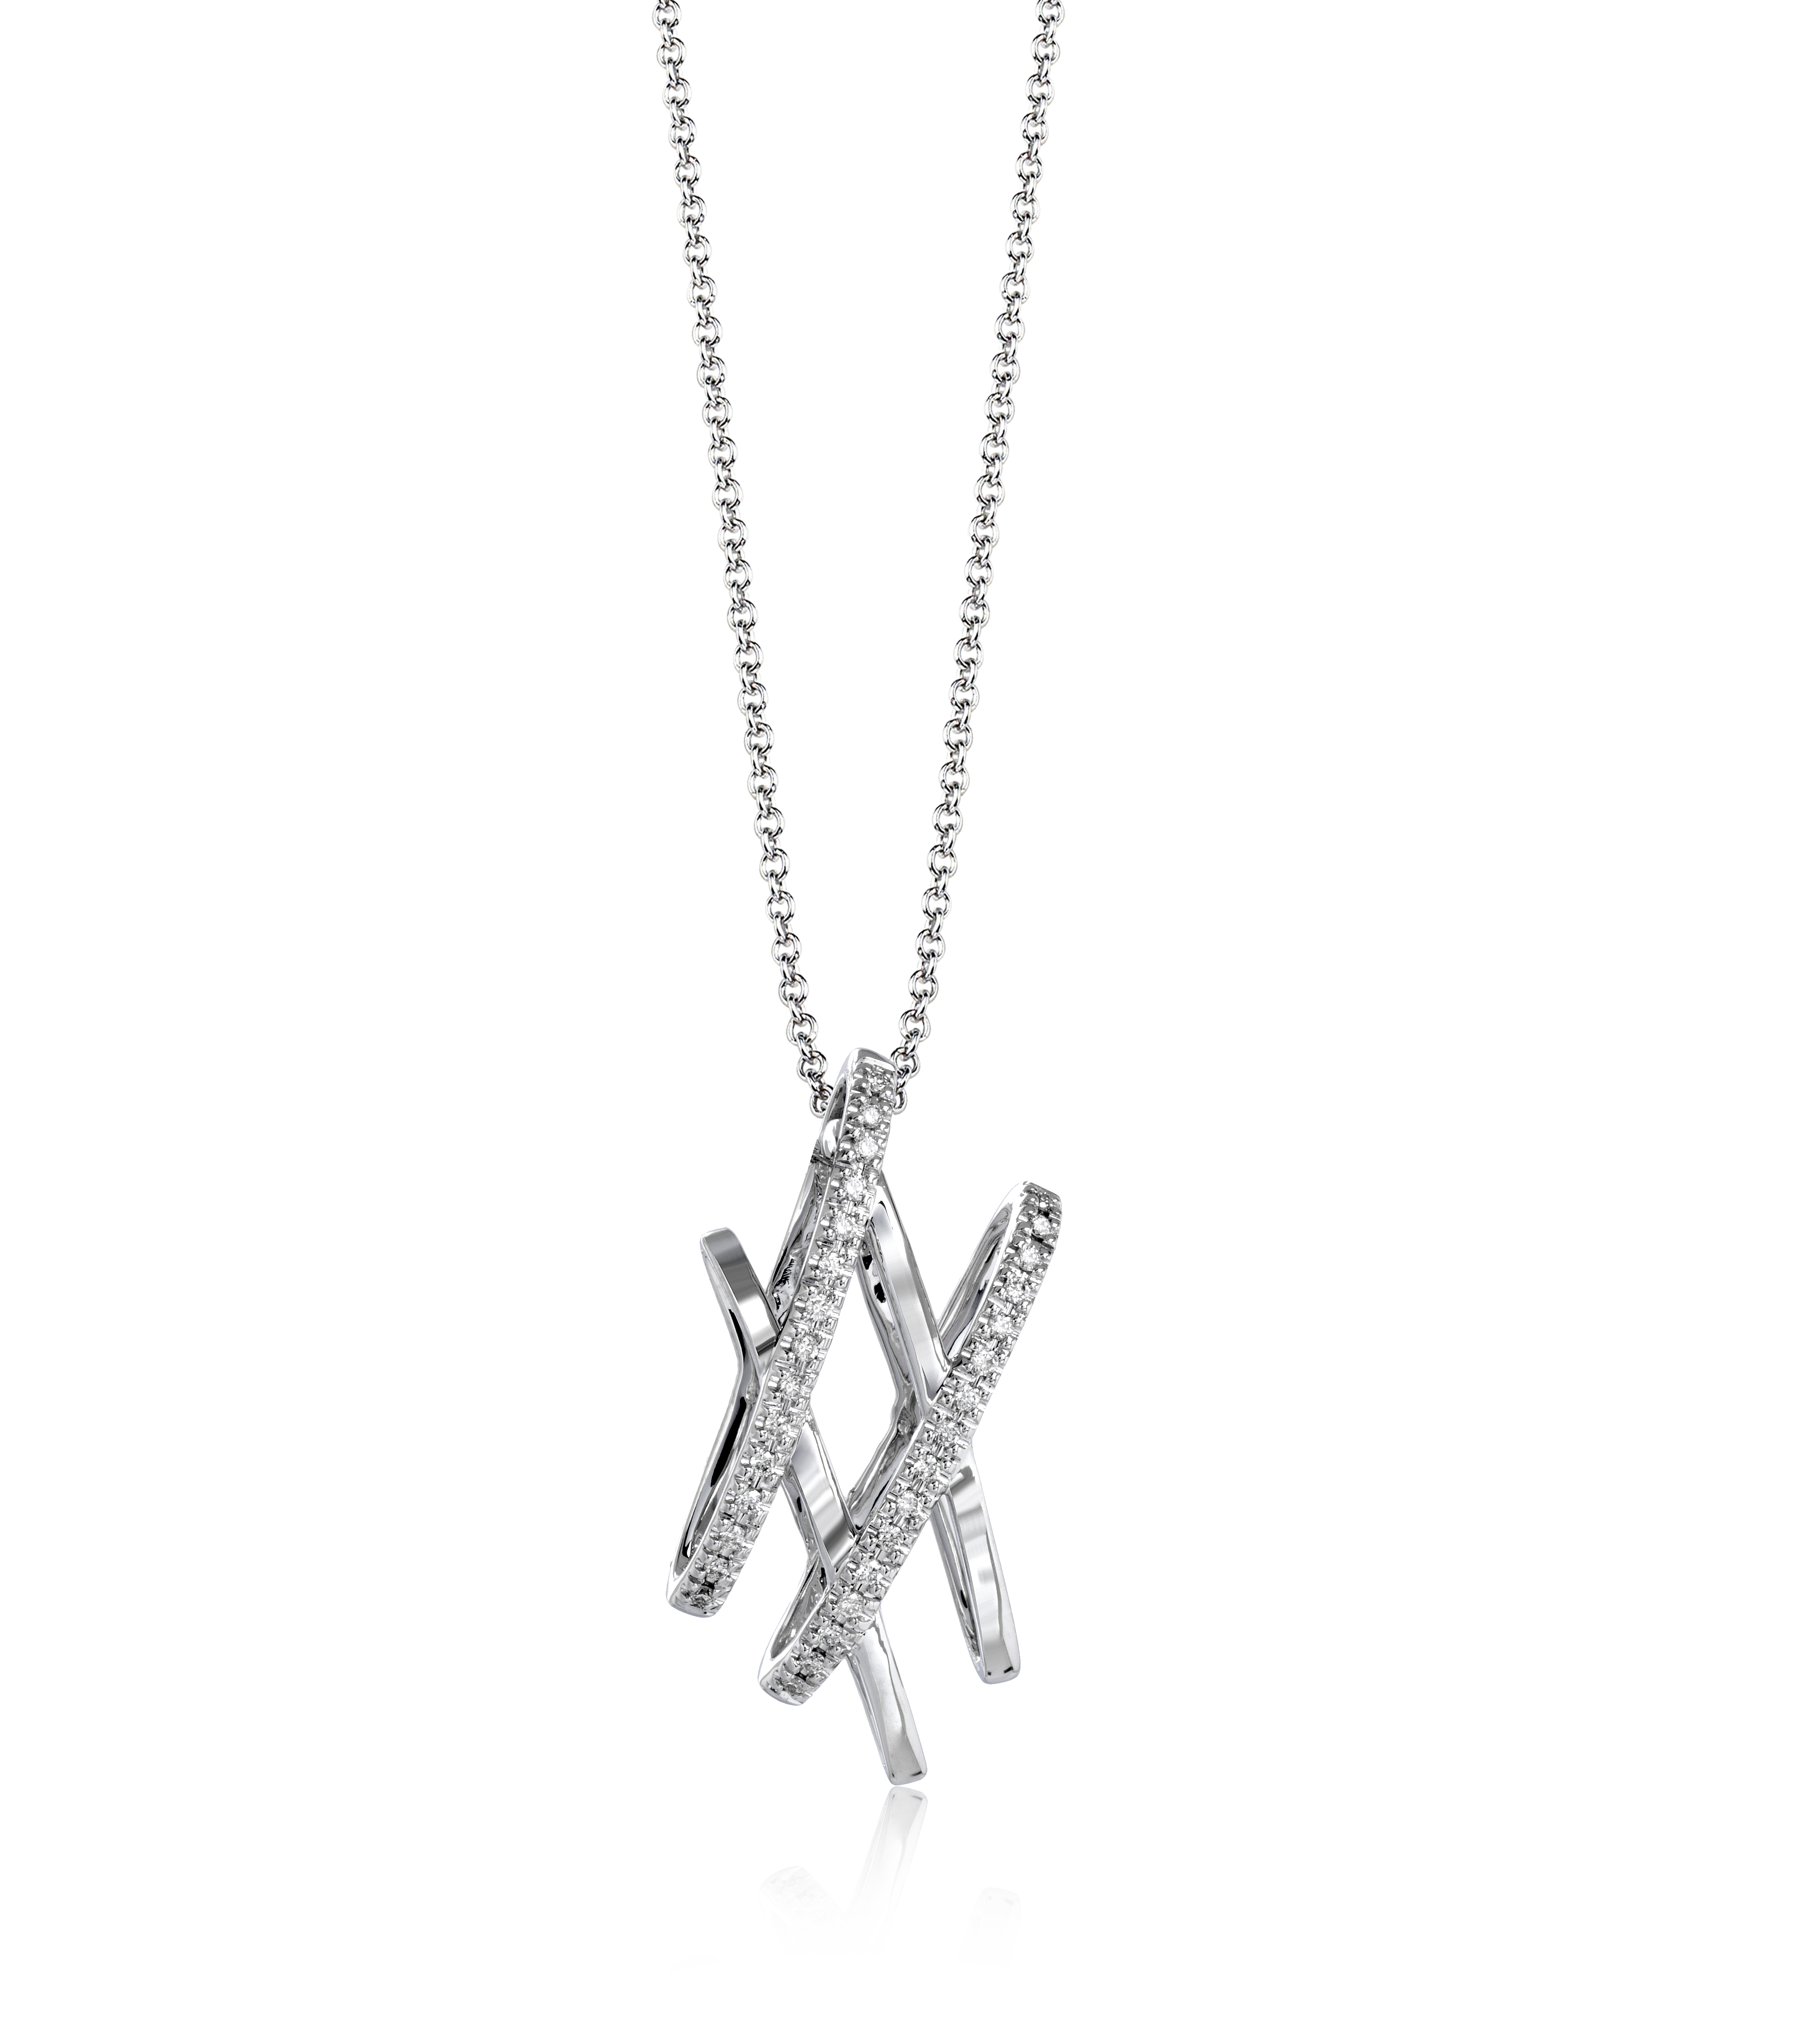 Funny necklace png. Zp pendant pendants and